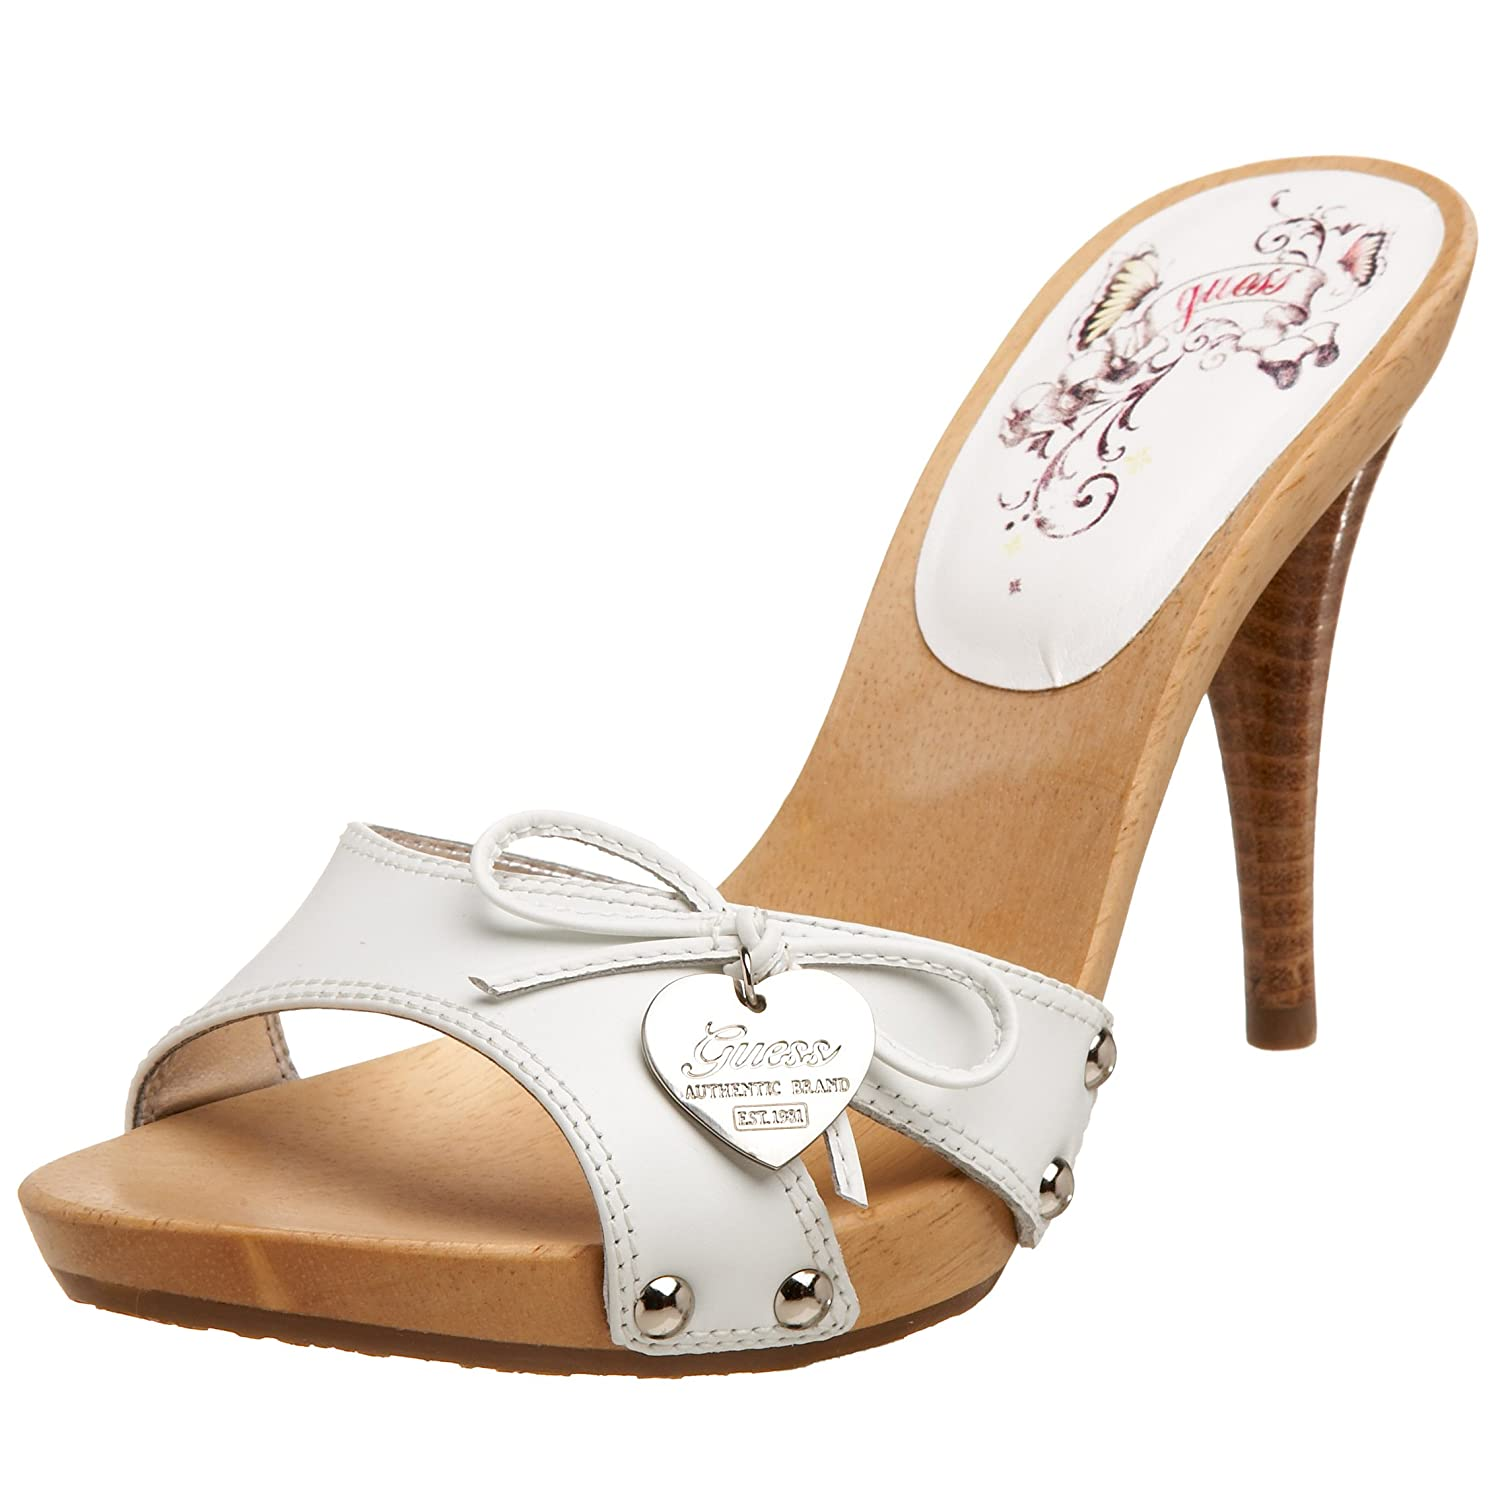 GUESS Women's Shower3 Once Band Wooden Sandal :  designer shoes guess heels sandals